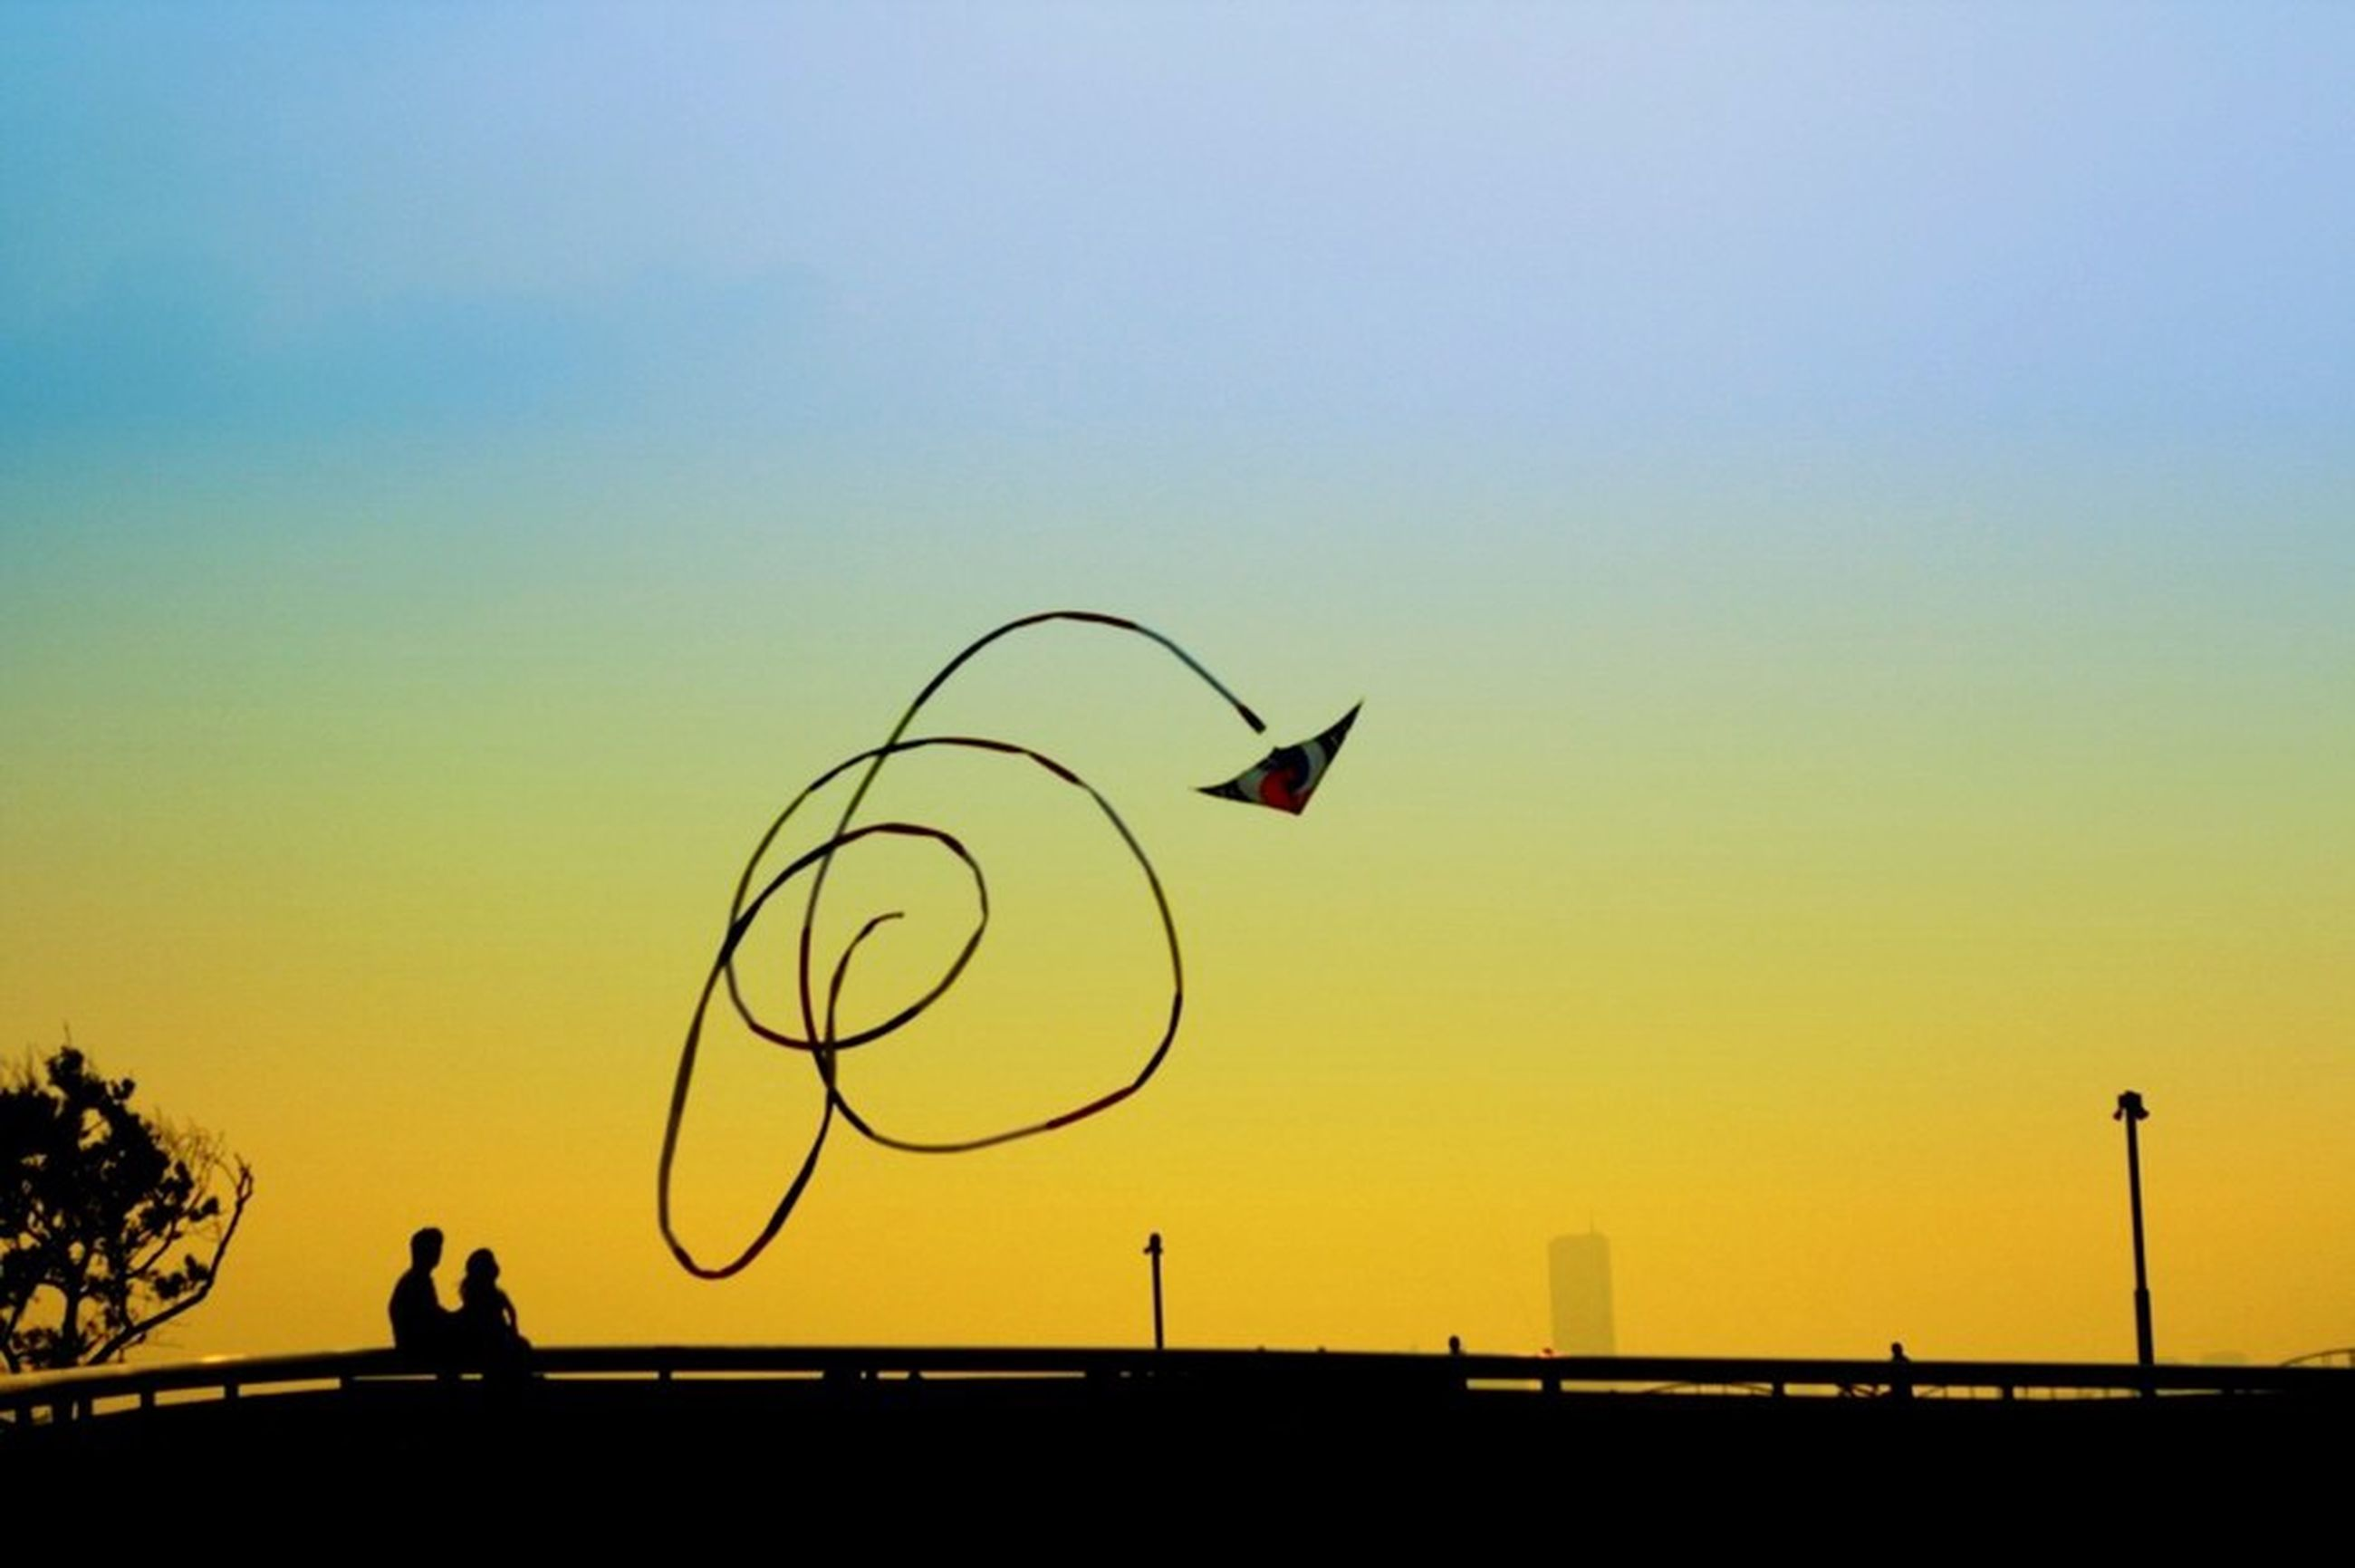 silhouette, sunset, clear sky, copy space, flying, transportation, mid-air, low angle view, bird, sky, orange color, animals in the wild, yellow, mode of transport, bicycle, nature, outdoors, animal themes